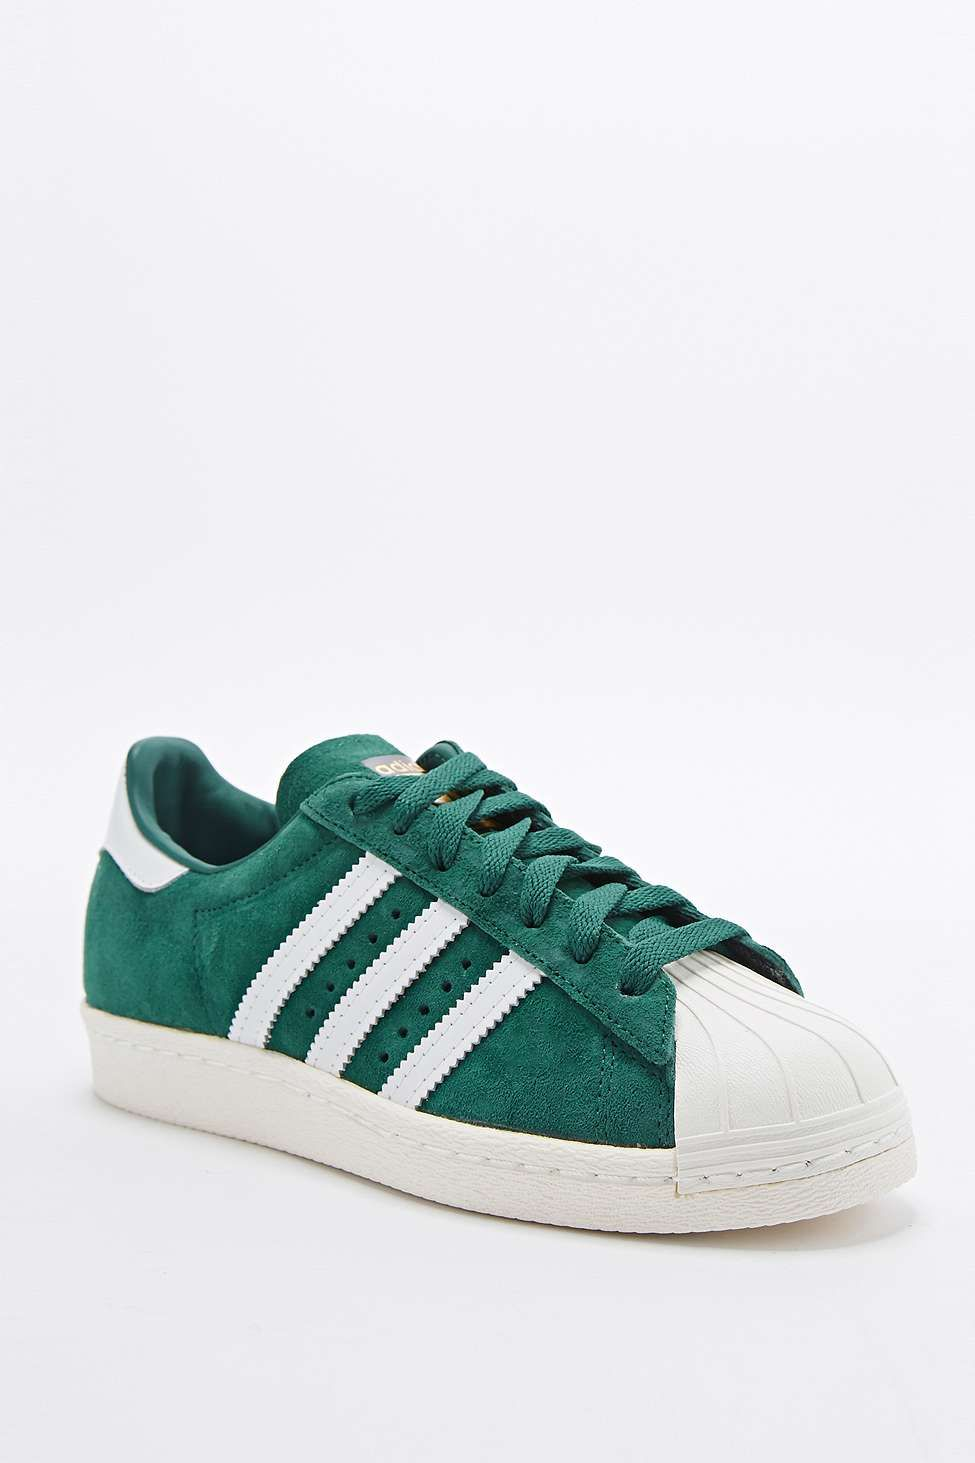 5134d8cadf4a7 adidas Originals - Baskets Superstar 80s Delux en daim vert en 2019 ...